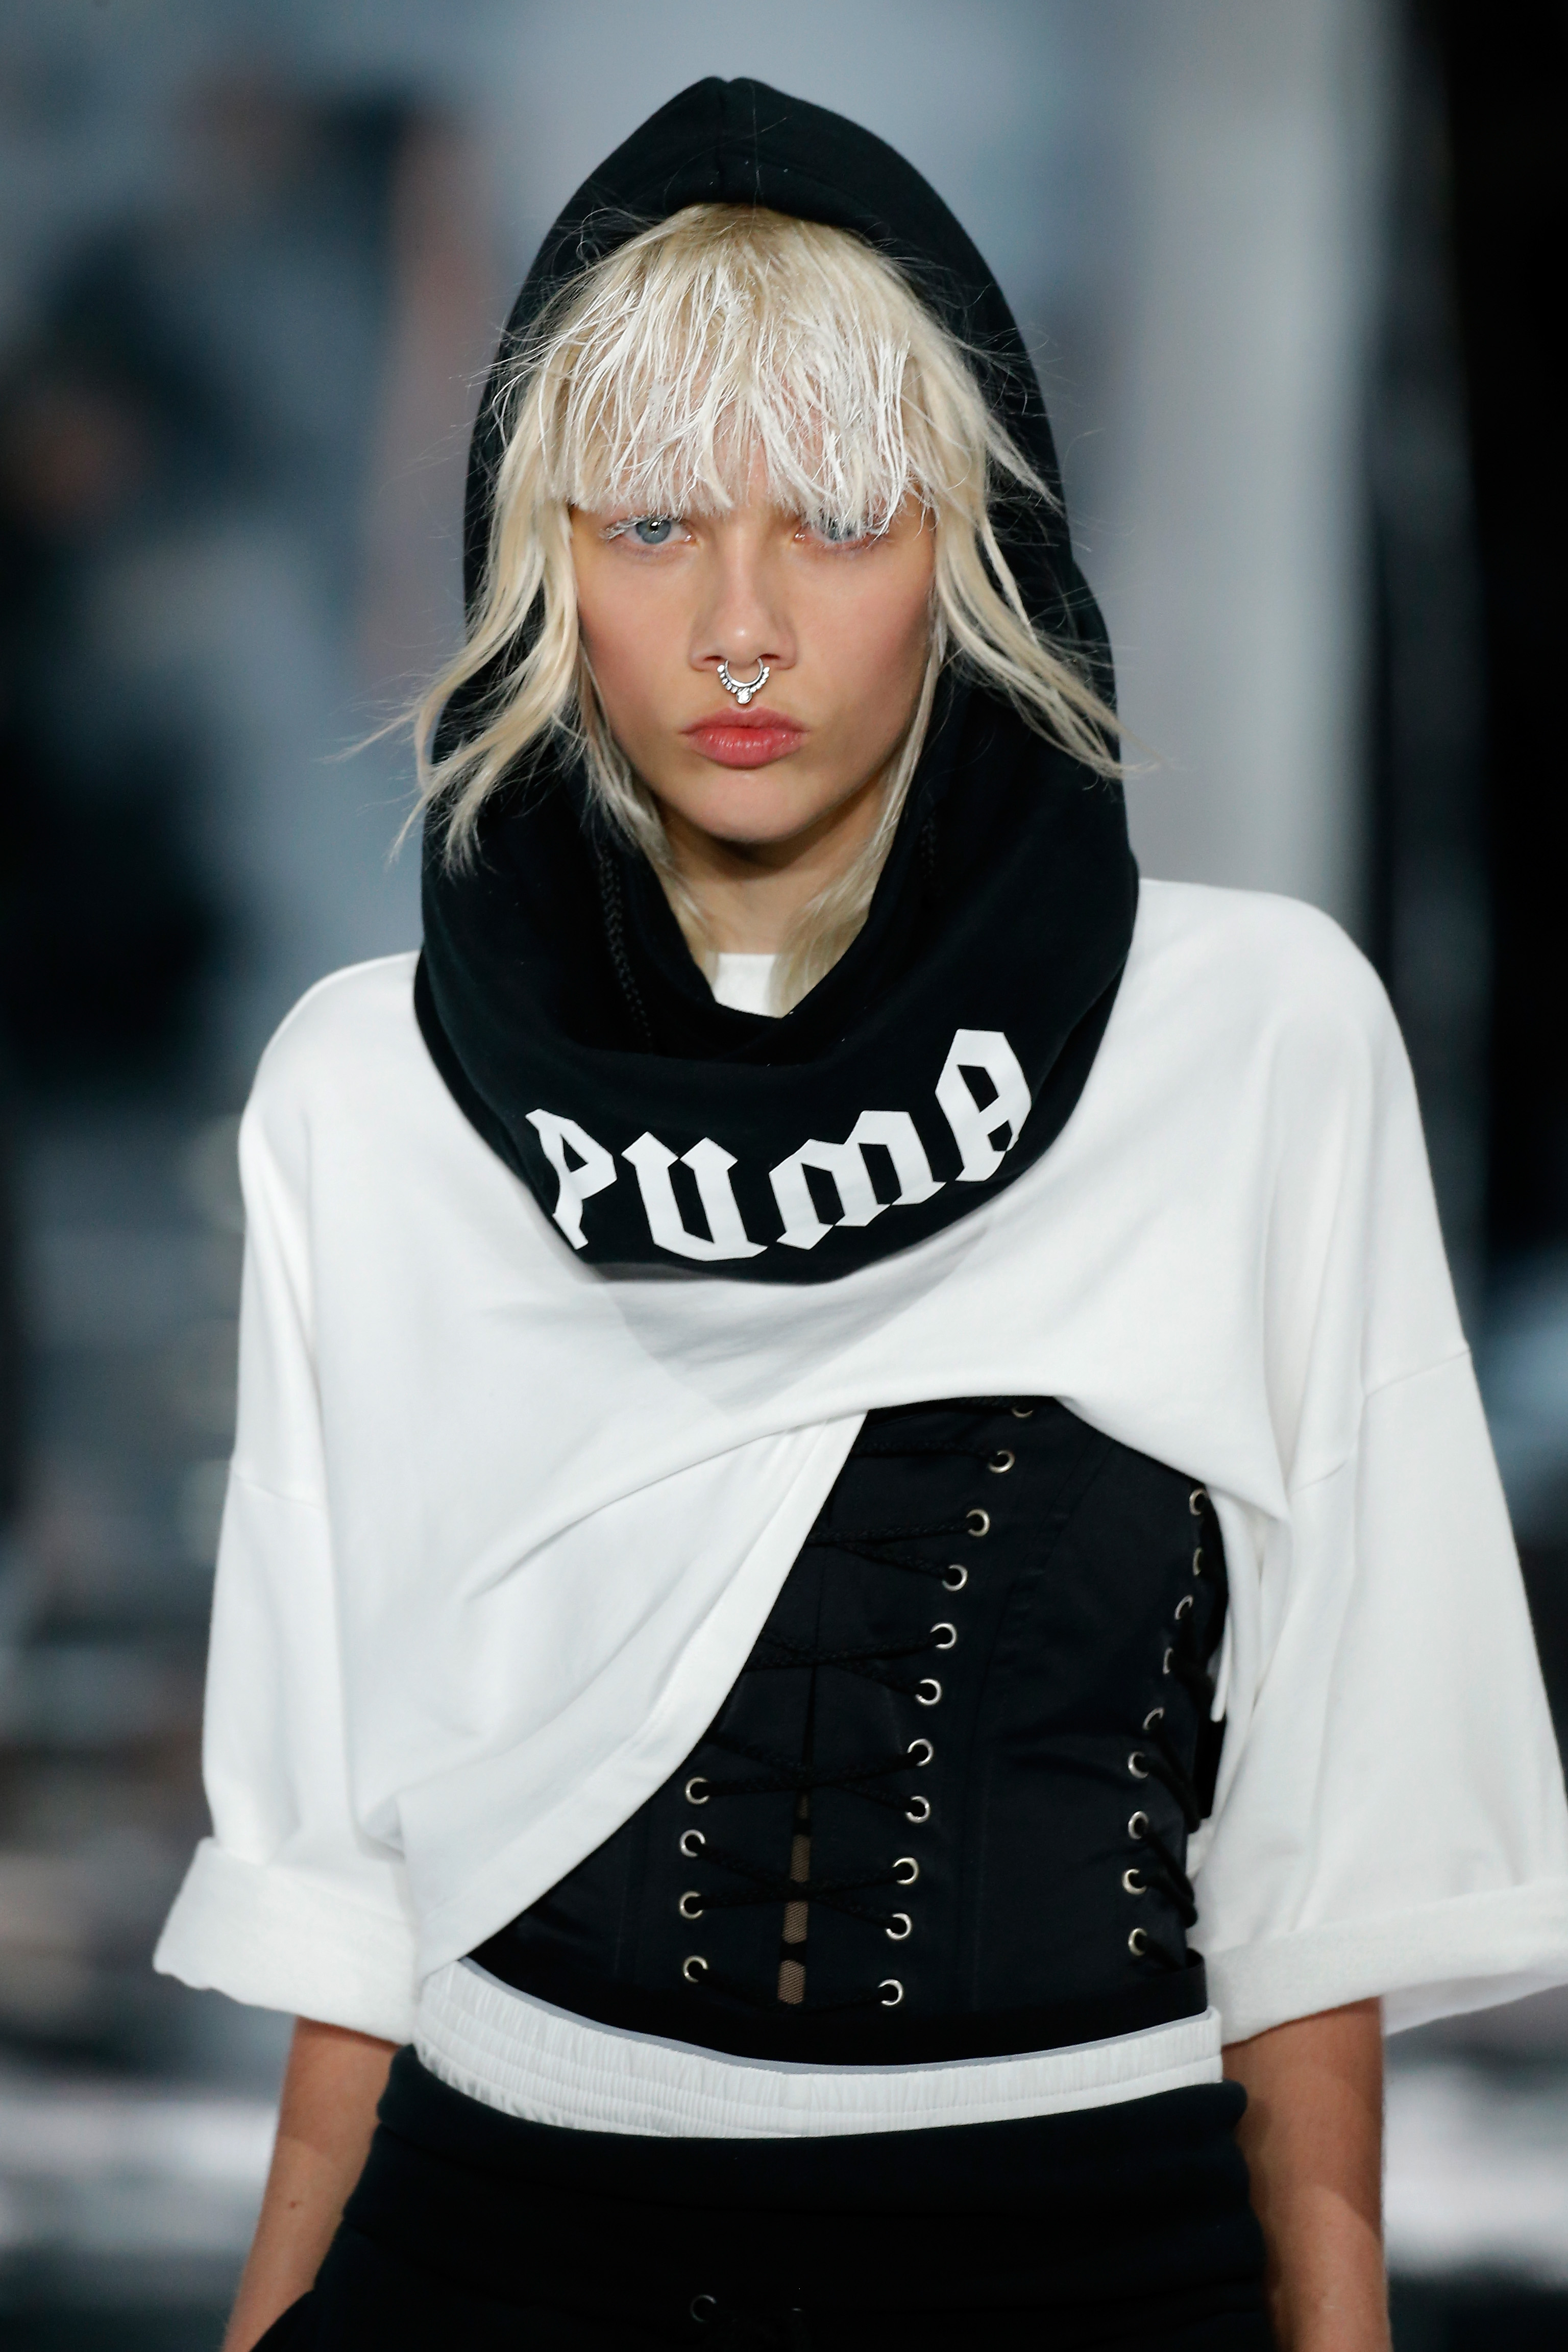 (Photo by JP Yim/Getty Images for FENTY PUMA)